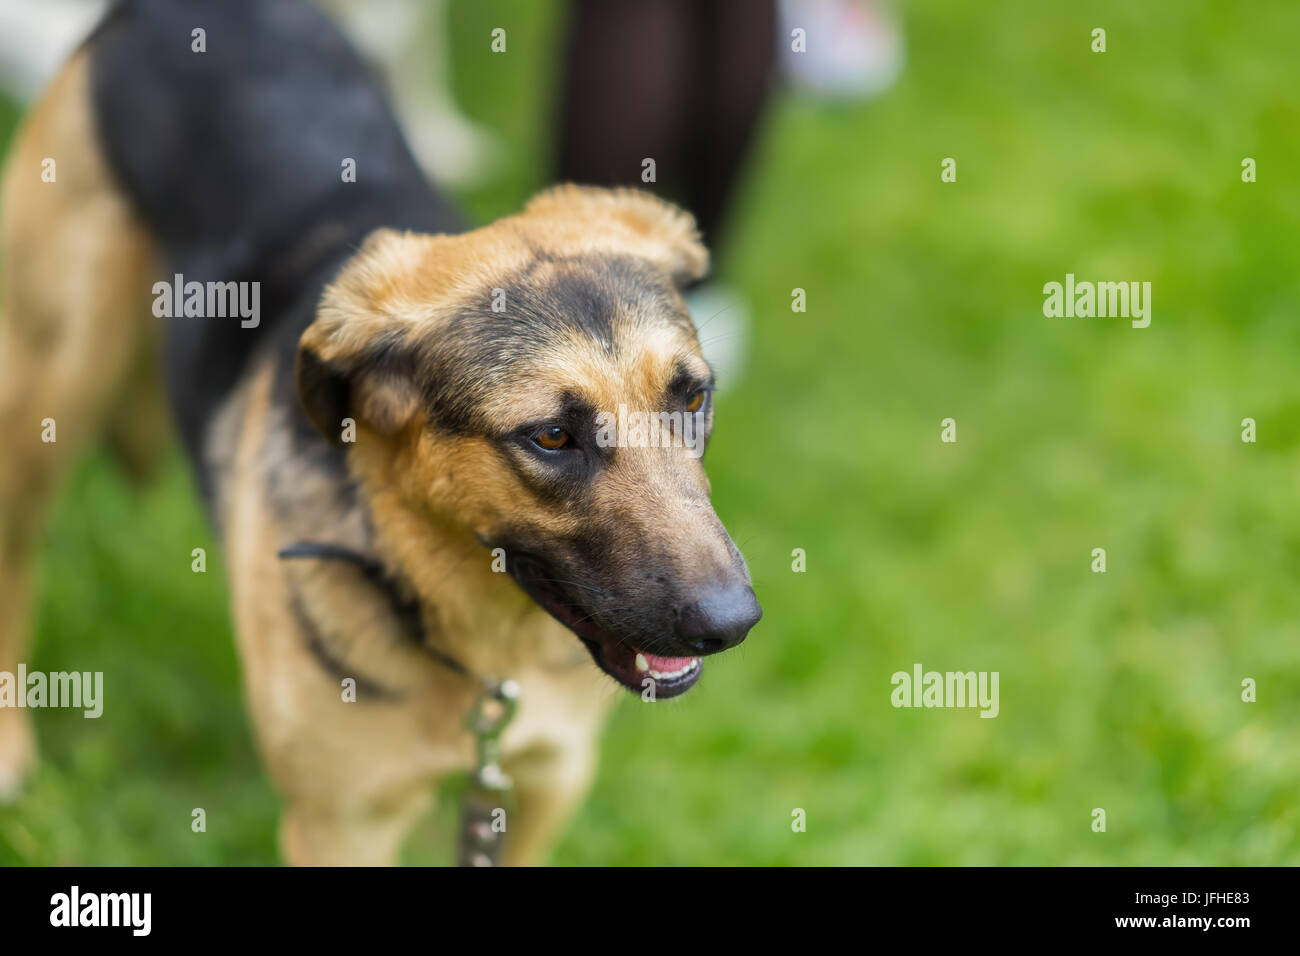 Dog in a shelter with sad eyes of hope, waiting to be adopted. Concept of social problem of homeless animals. With - Stock Image